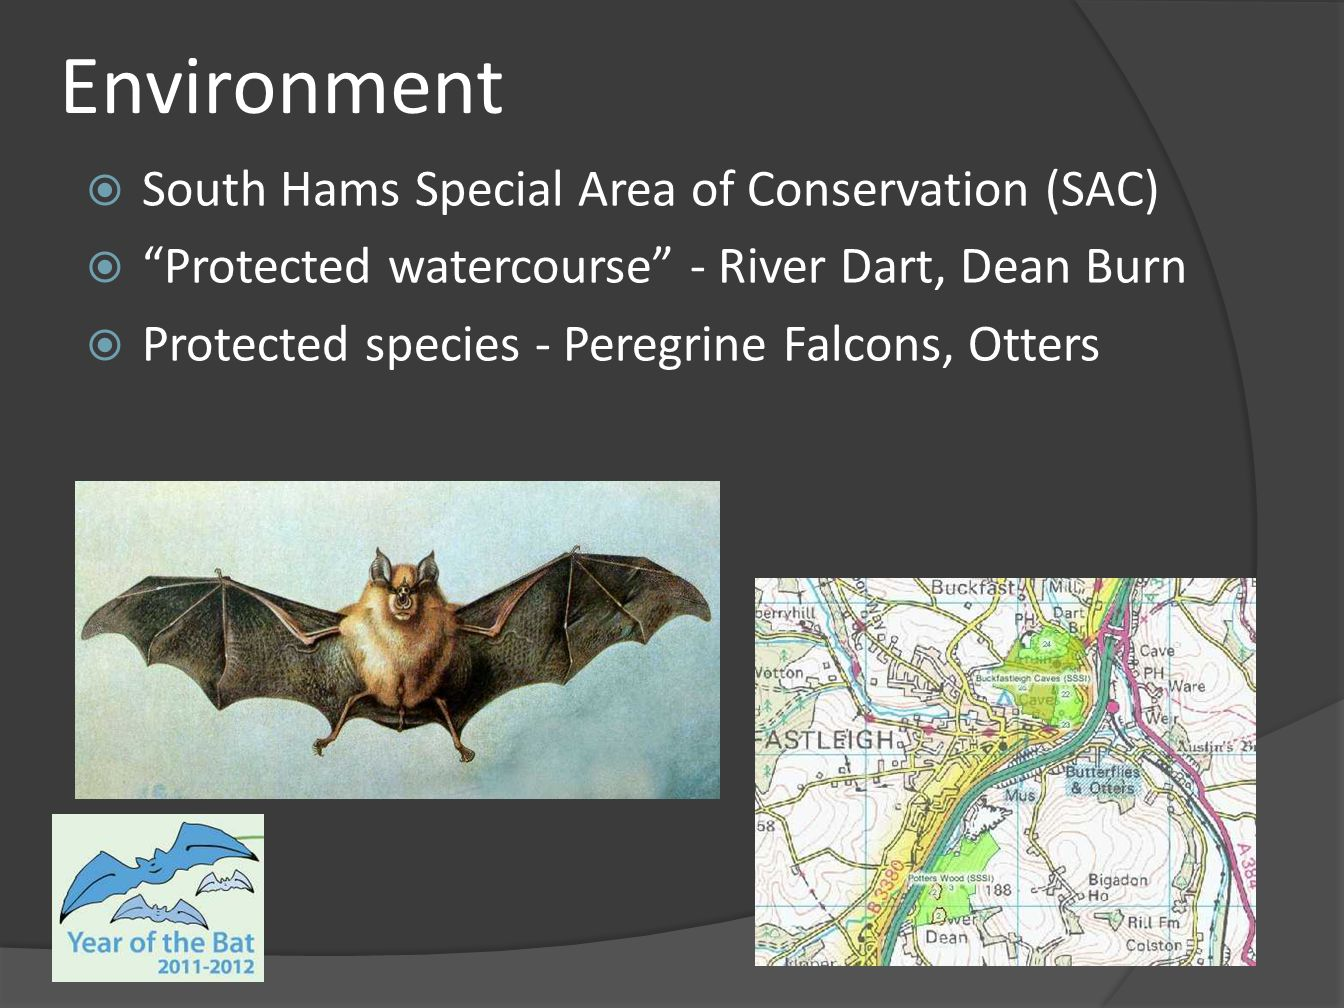 Environment South Hams Special Area of Conservation (SAC)